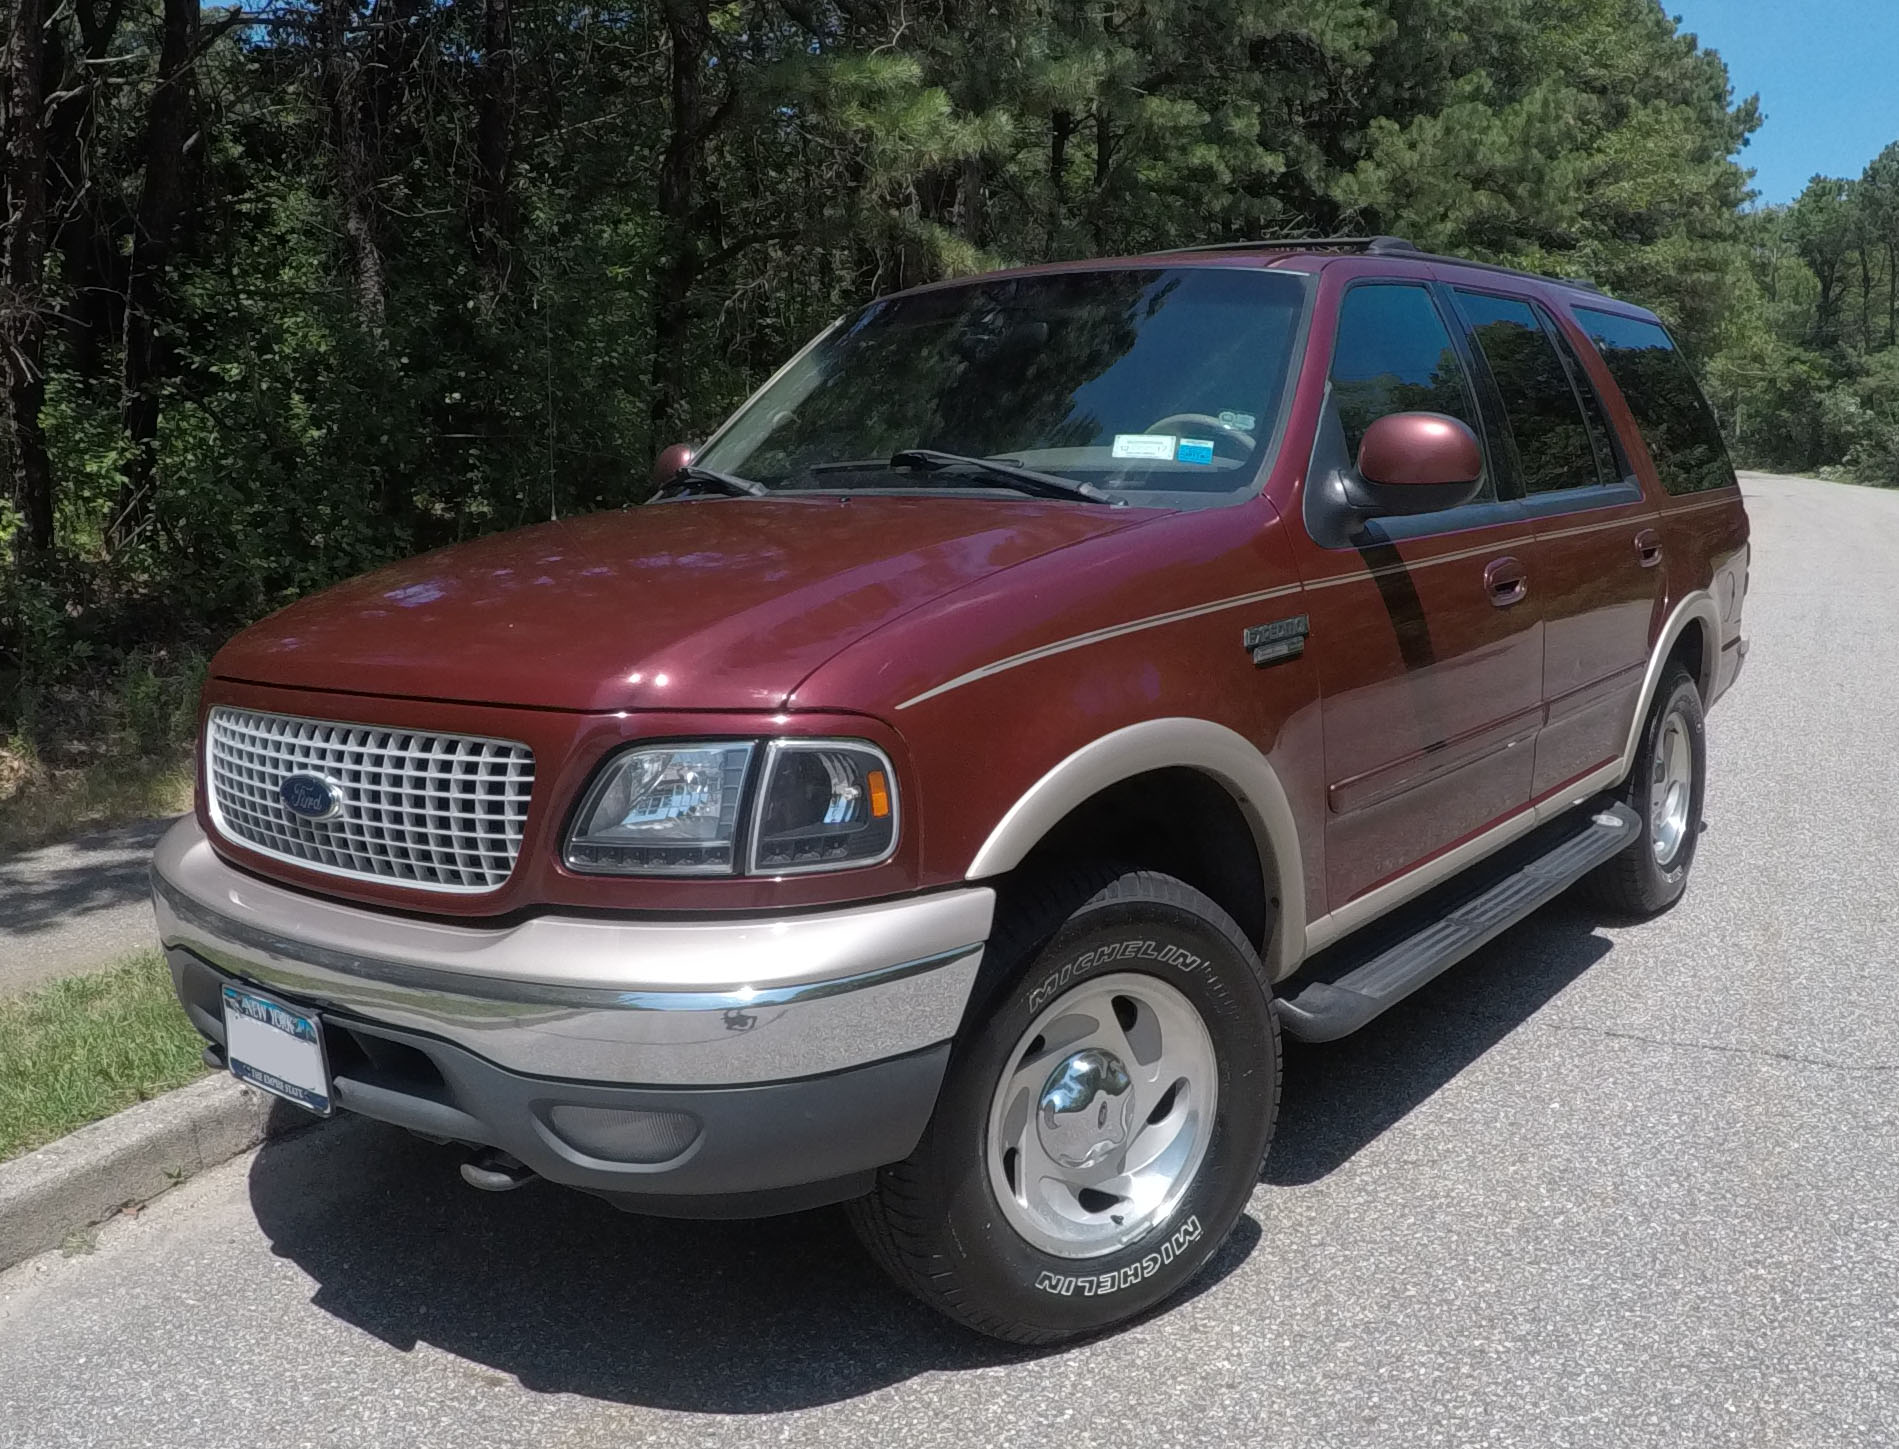 file 1999 ford expedition jpg wikimedia commons https commons wikimedia org wiki file 1999 ford expedition jpg